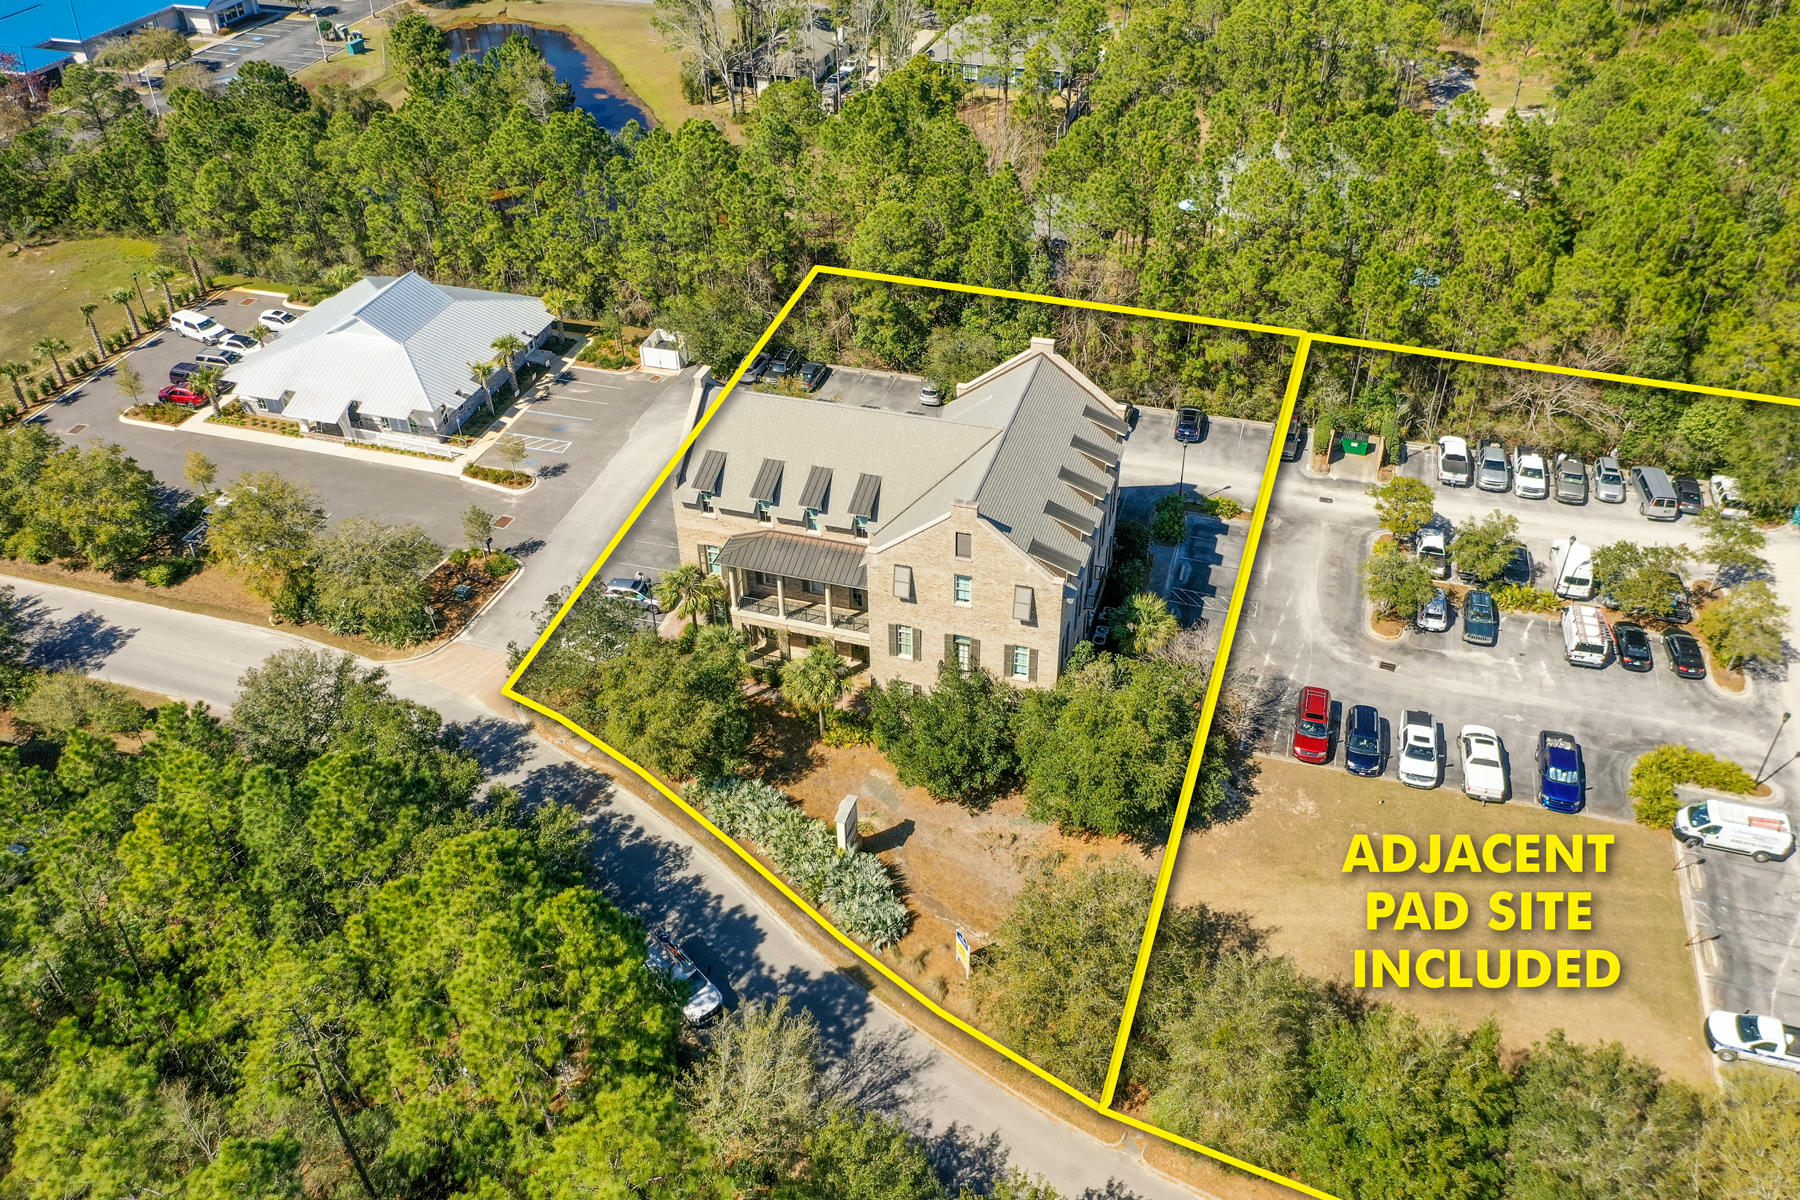 This property exhibits a very impressive image, with an exceptionally high level of interior and exterior finish. Medical and professional office users of this Class A building will enjoy the convenience to Sacred Heart Hospital of Santa Rosa Beach, as well as the Grand Boulevard and Publix area shopping centers around Sandestin Golf & Beach Resort. The building is of solid construction integrity and meticulously maintained.  The adjacent, contiguous lot is included in this list price that offers a nearly ''build-ready, pad site'', which will accommodate an approximate 7,500+ SF, two story building.